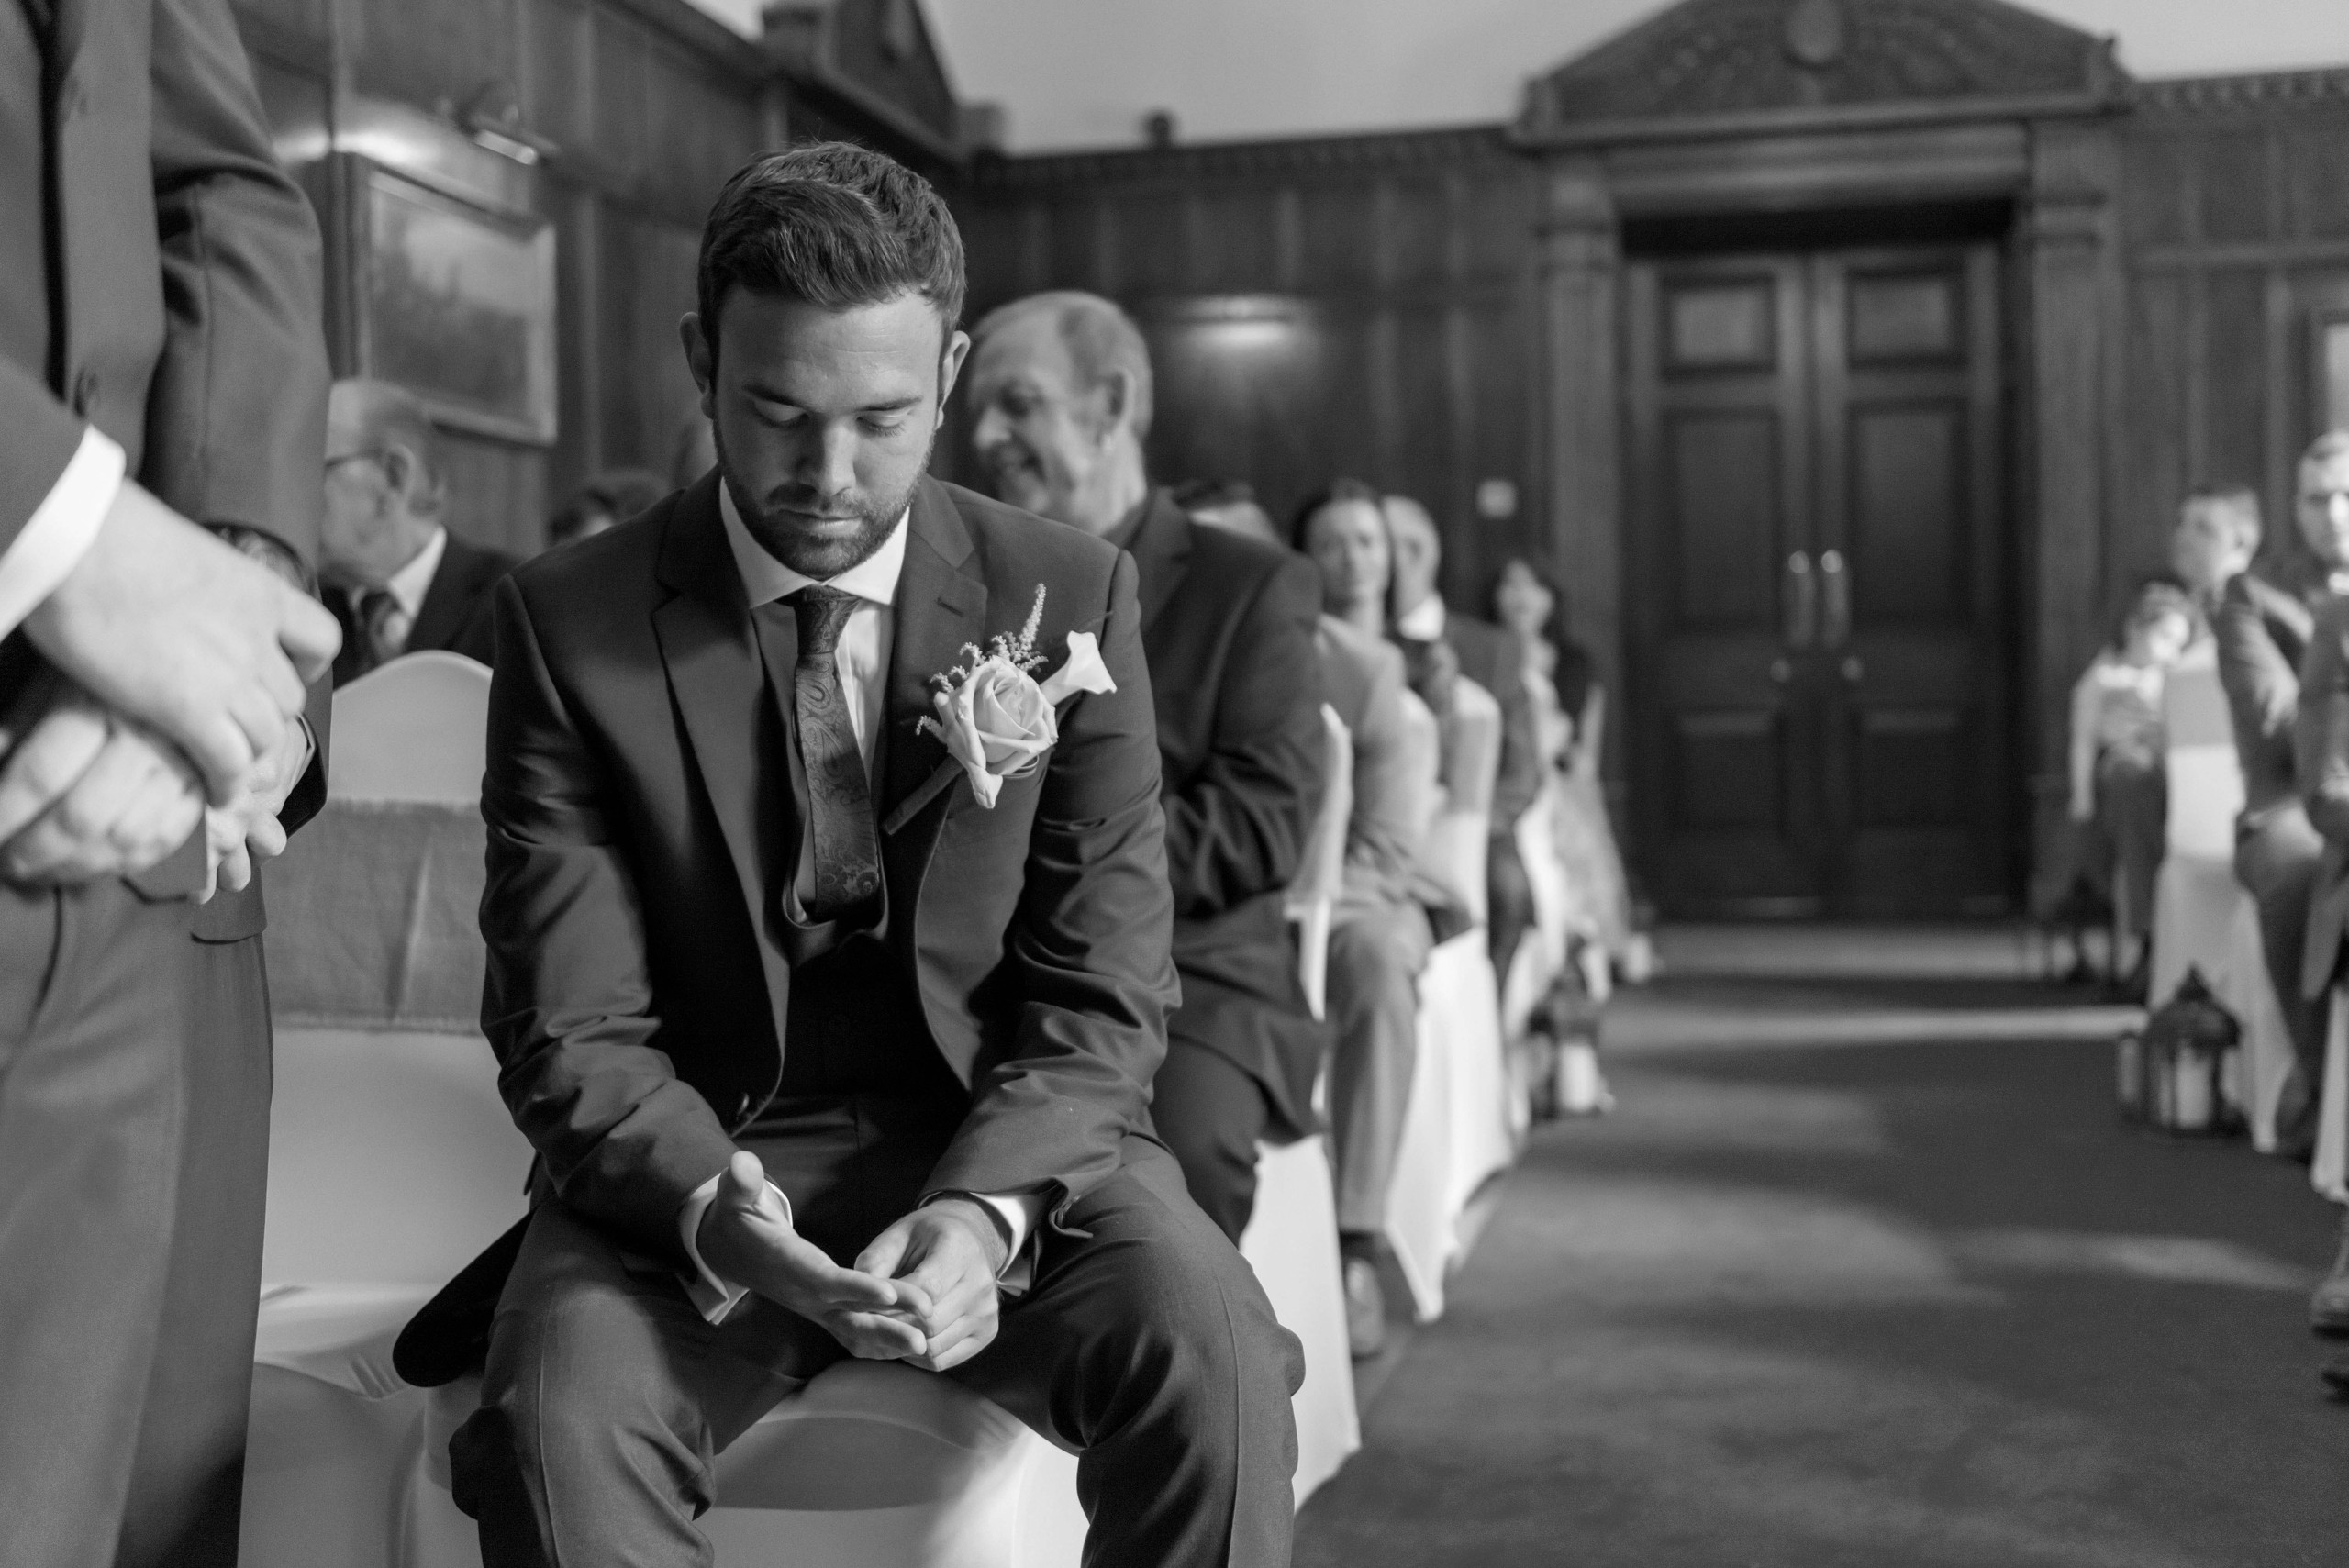 Candid black and white monochrome photograph of groom waiting nervously at aisle for bride on wedding day at Ellingham Hall wedding venue in Northumberland